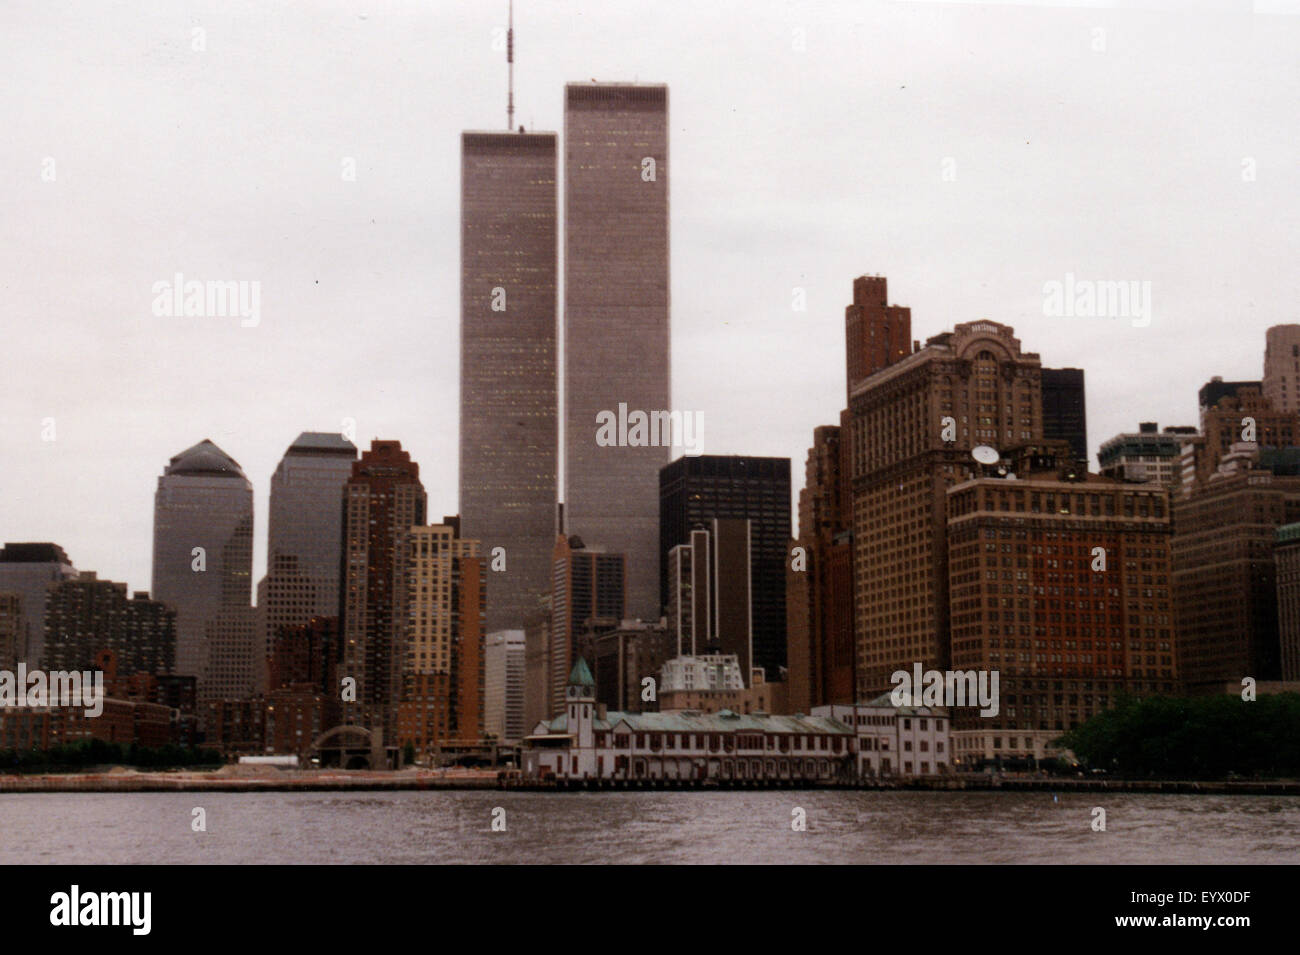 Twin Towers New York Stock Photos Twin Towers New York Stock  # Expo Muebles Wtc Df